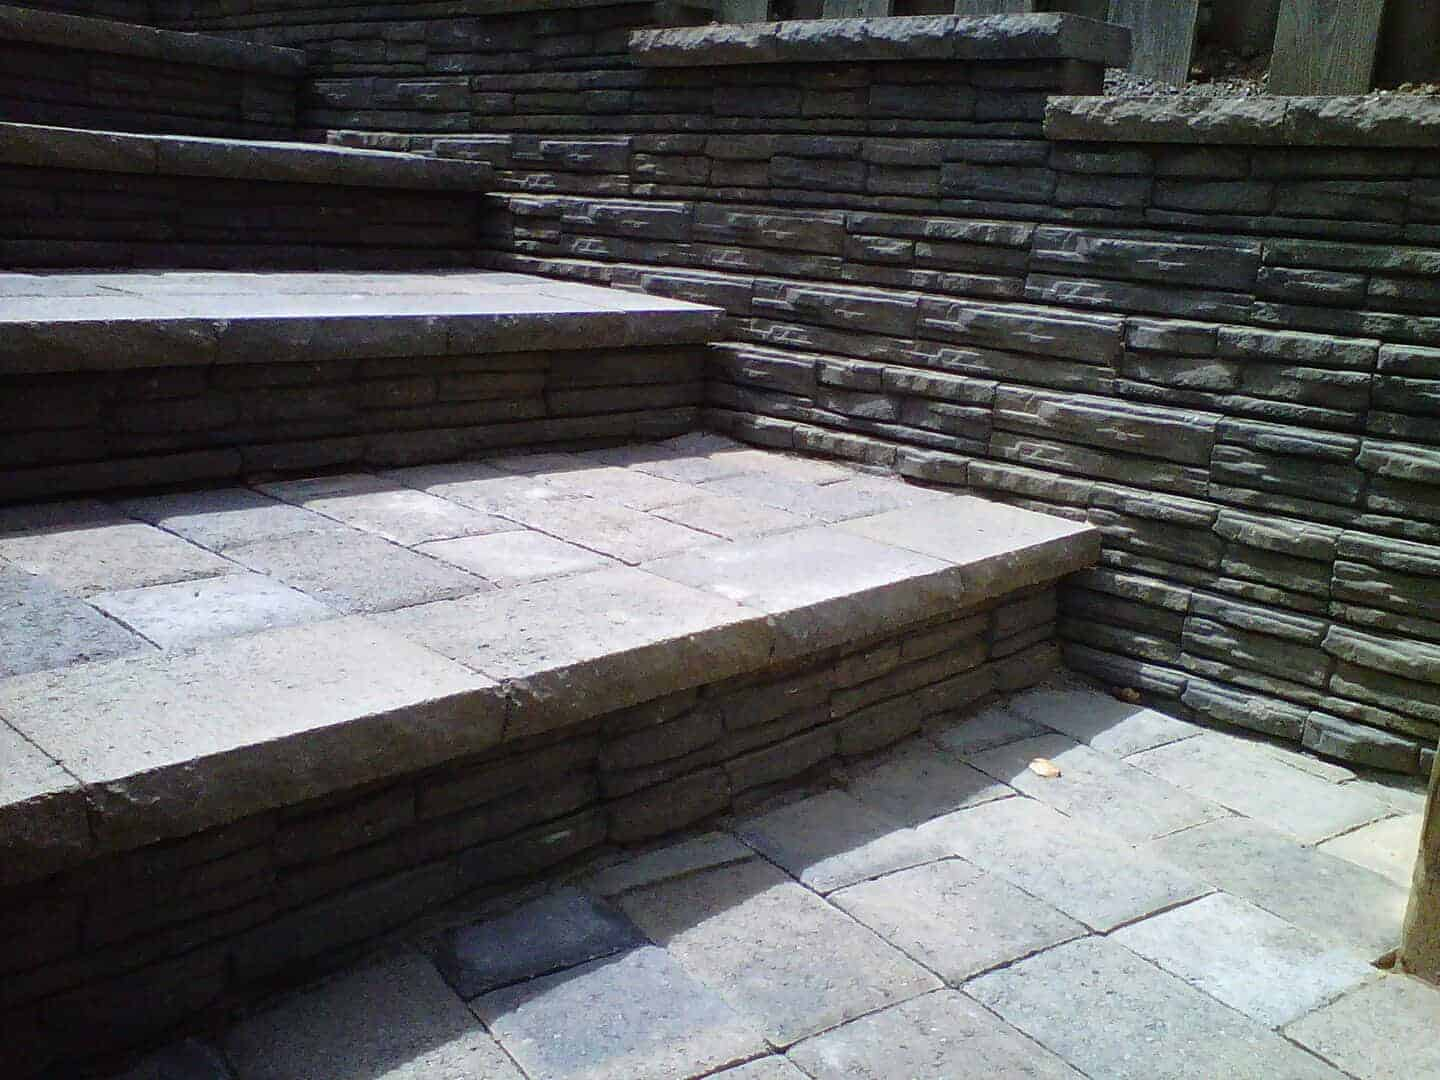 small set of grey stairs made out of concrete brick pavers. in Portland Paver patio, paver patio floor with retaining walls on the right side